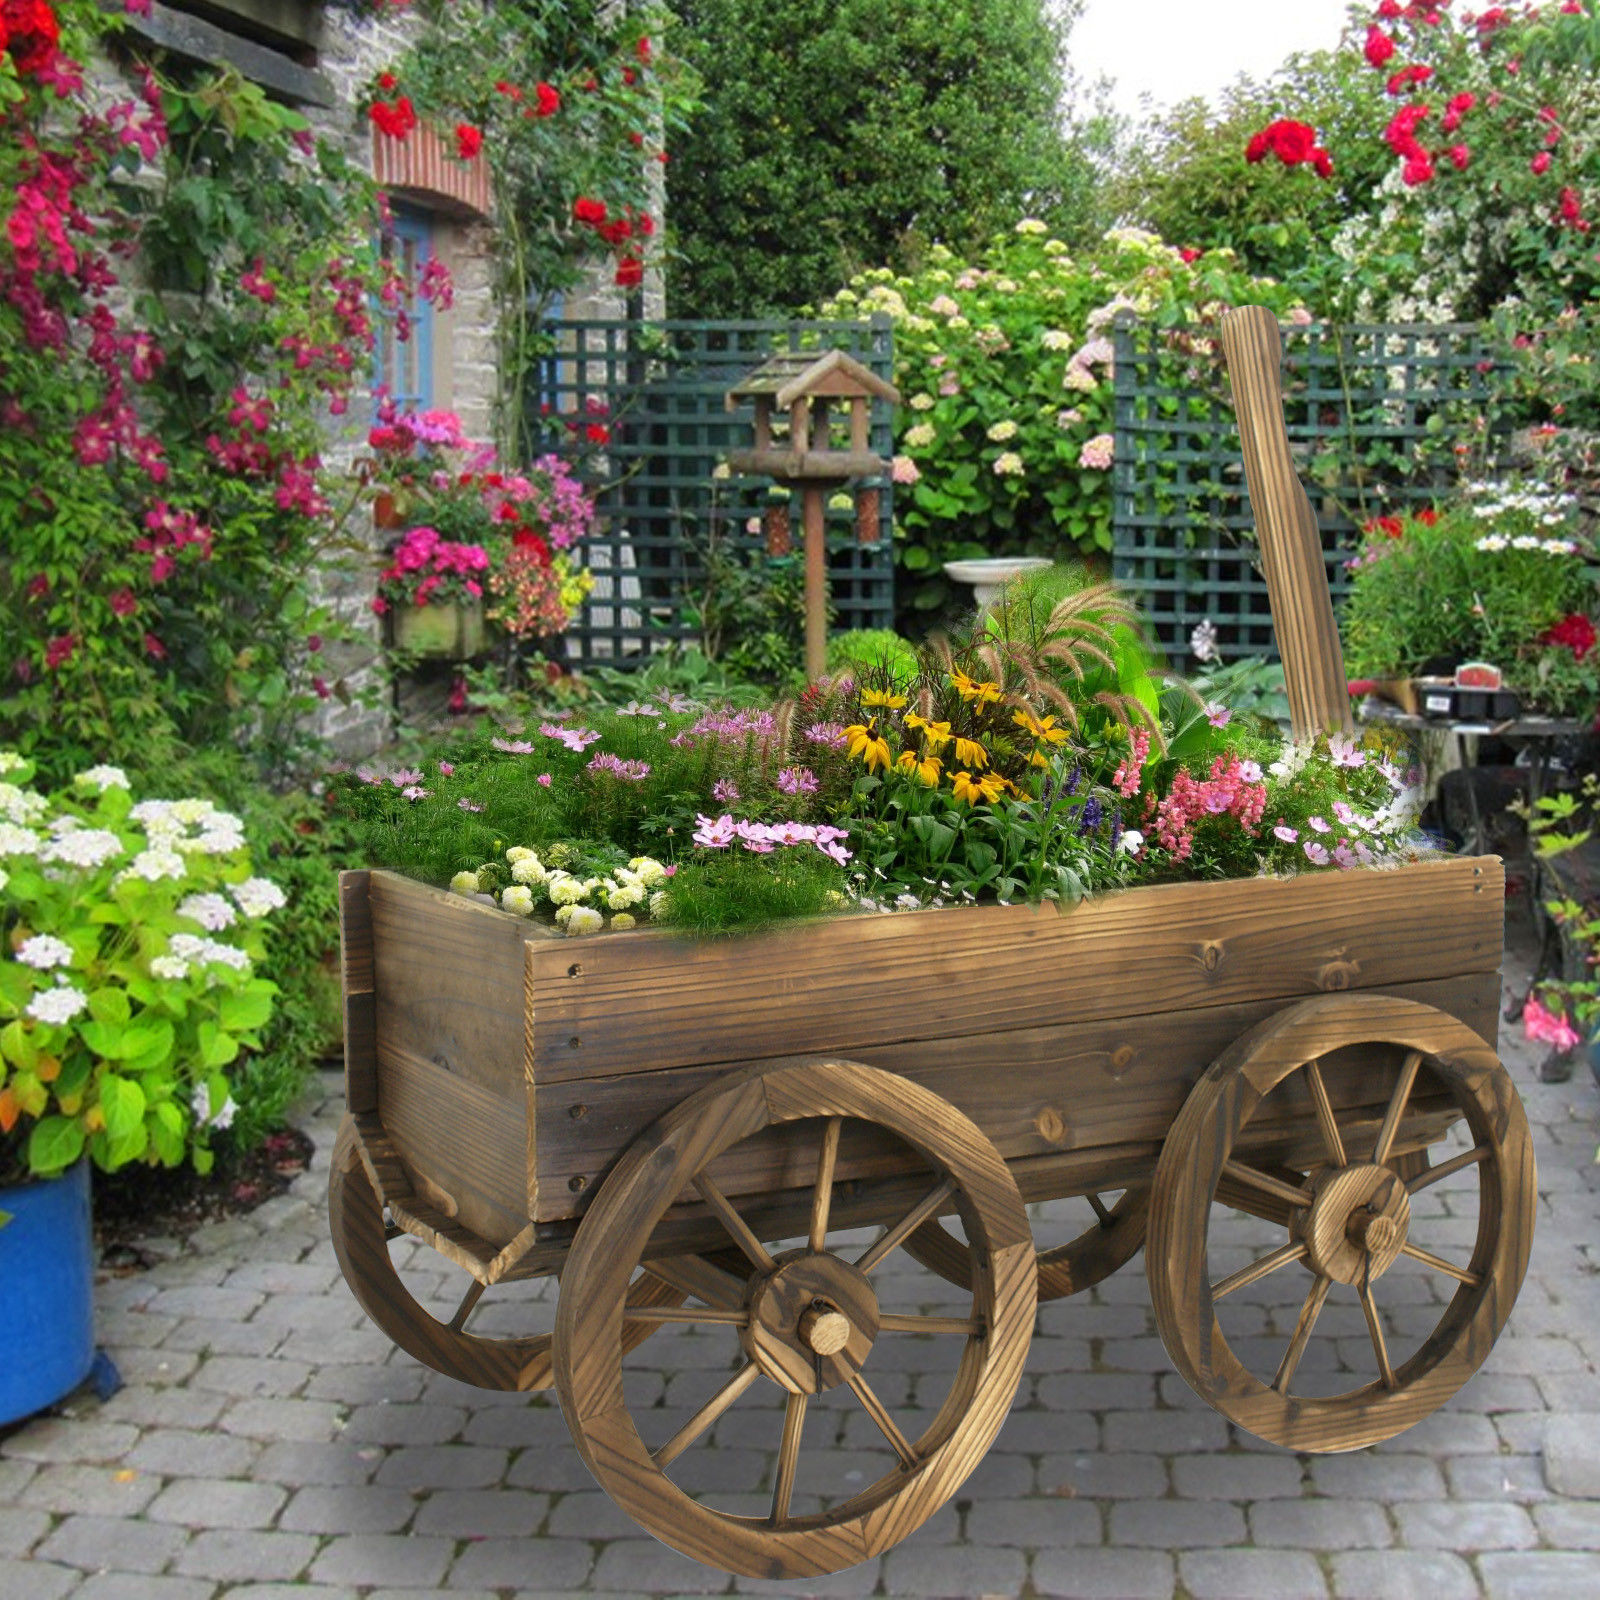 Zeny Garden Wood Wagon Flower Planter Pot Stand With Wheels Home Outdoor  Decor